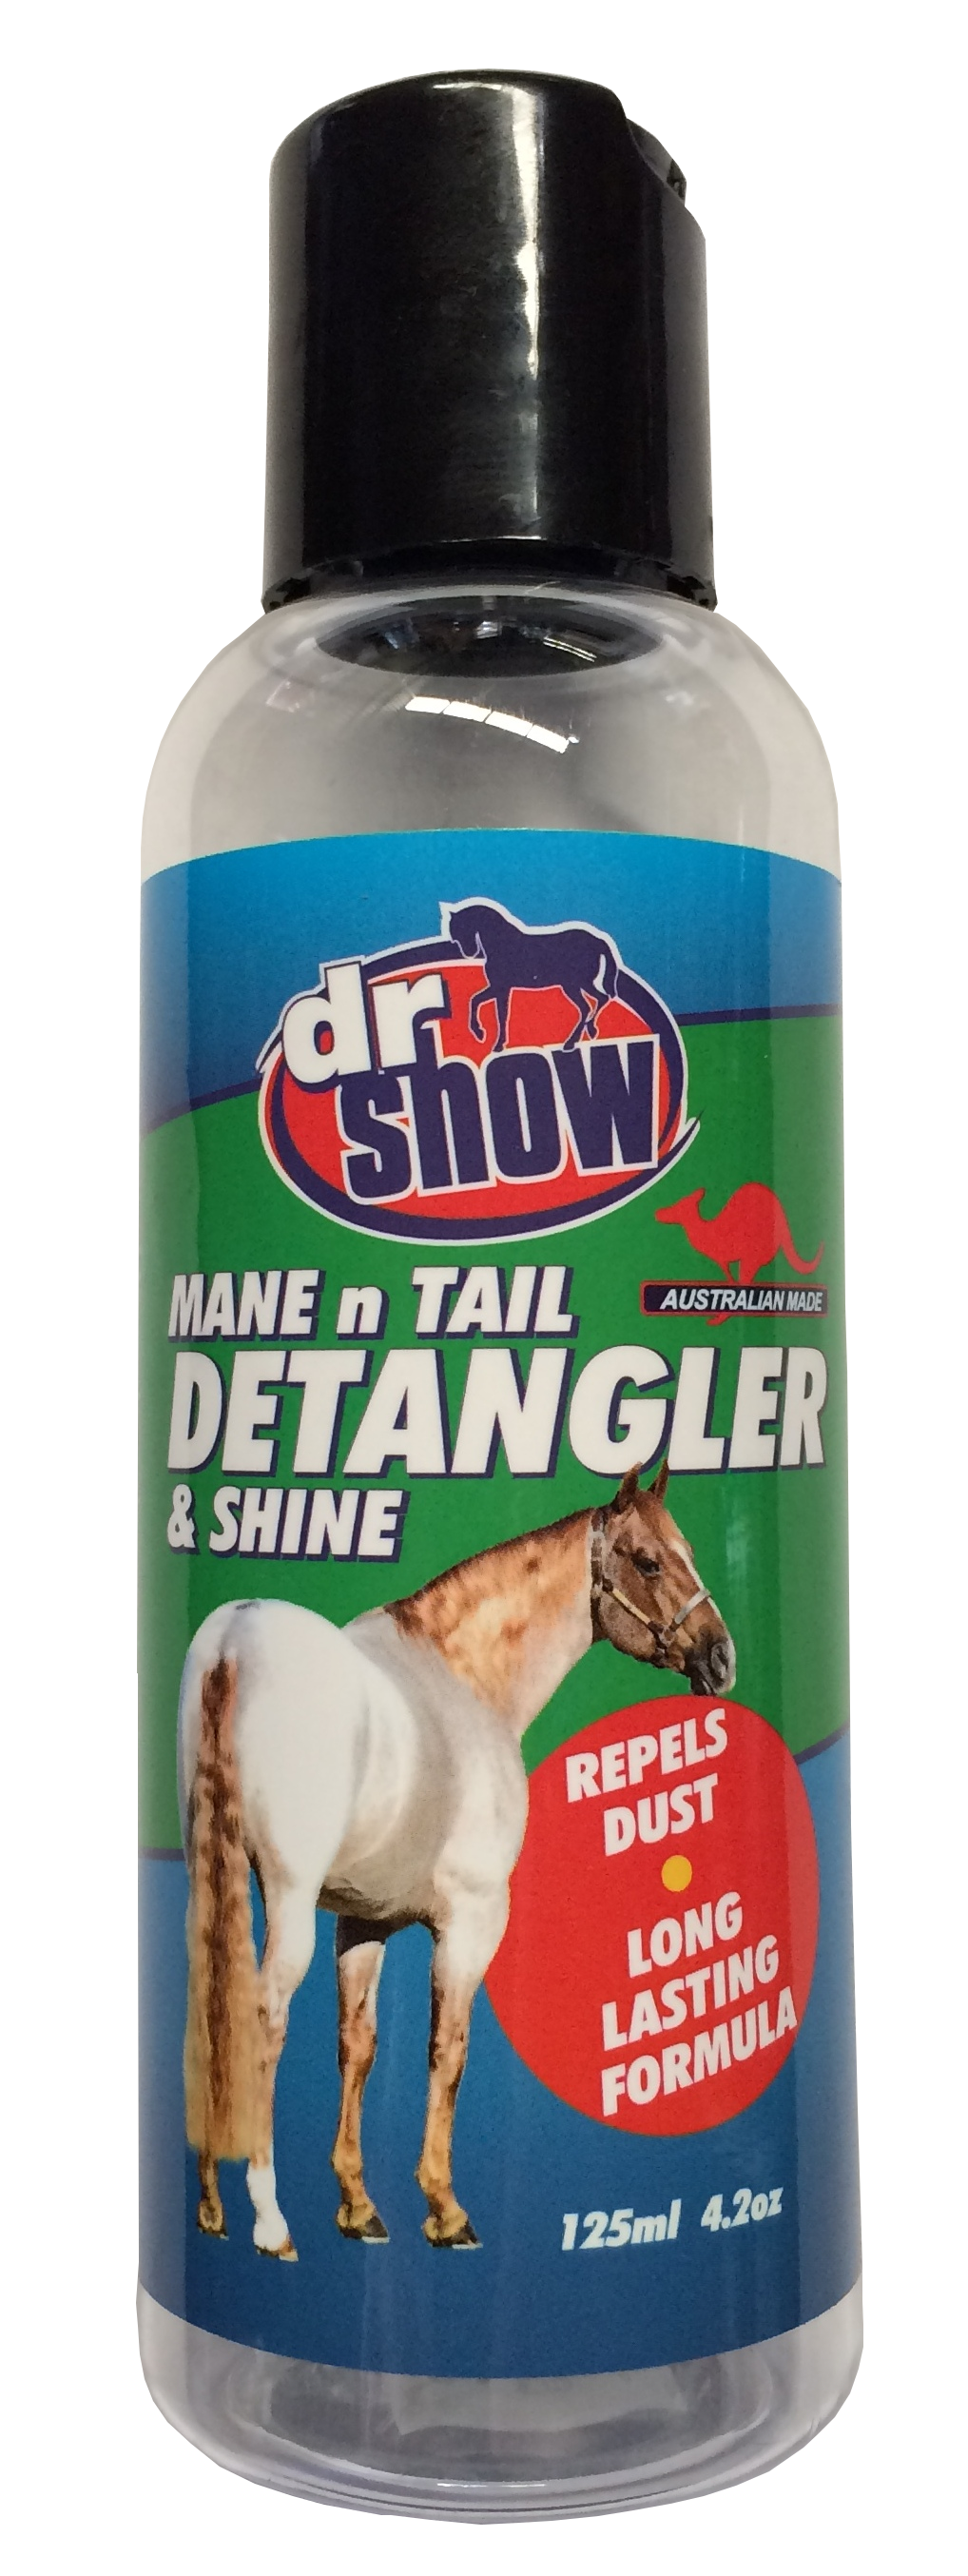 Tail Detangler and Shine Dr Show